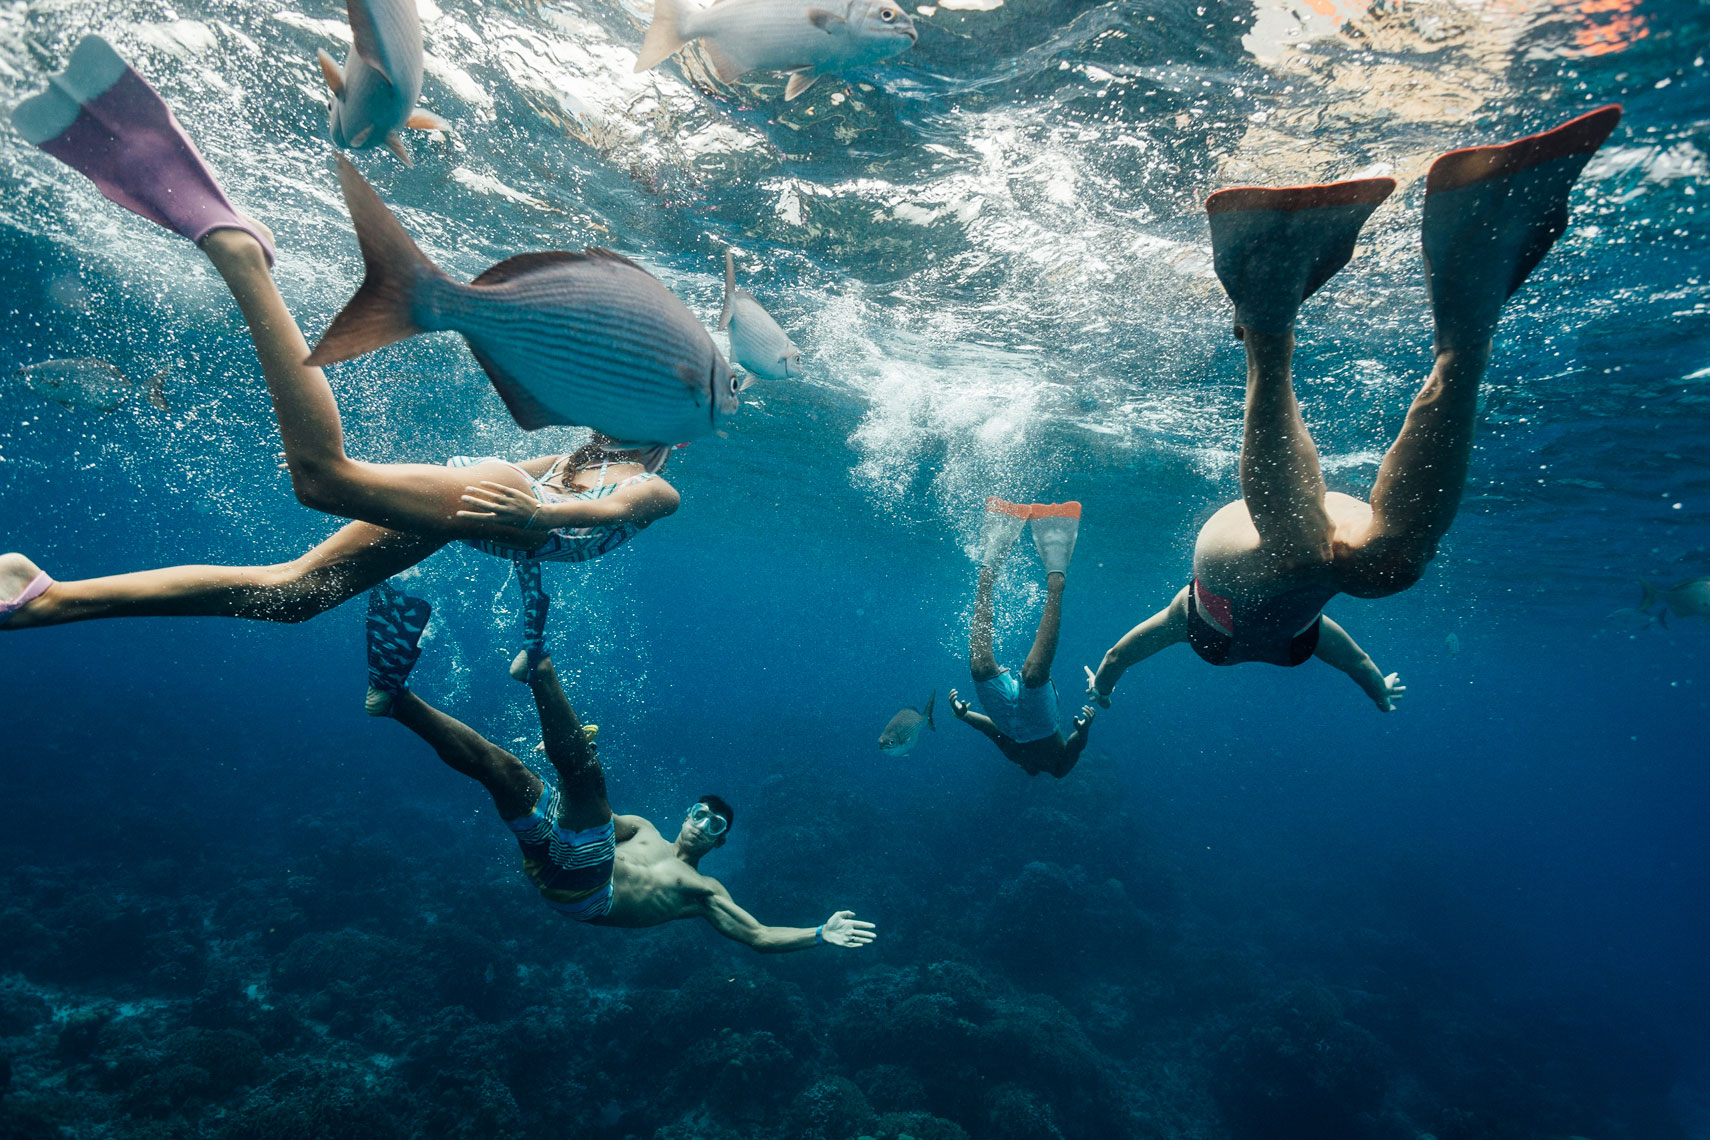 RCI_Cozumel_Coulmbia_Reef_Snorkel_Family_02_04432